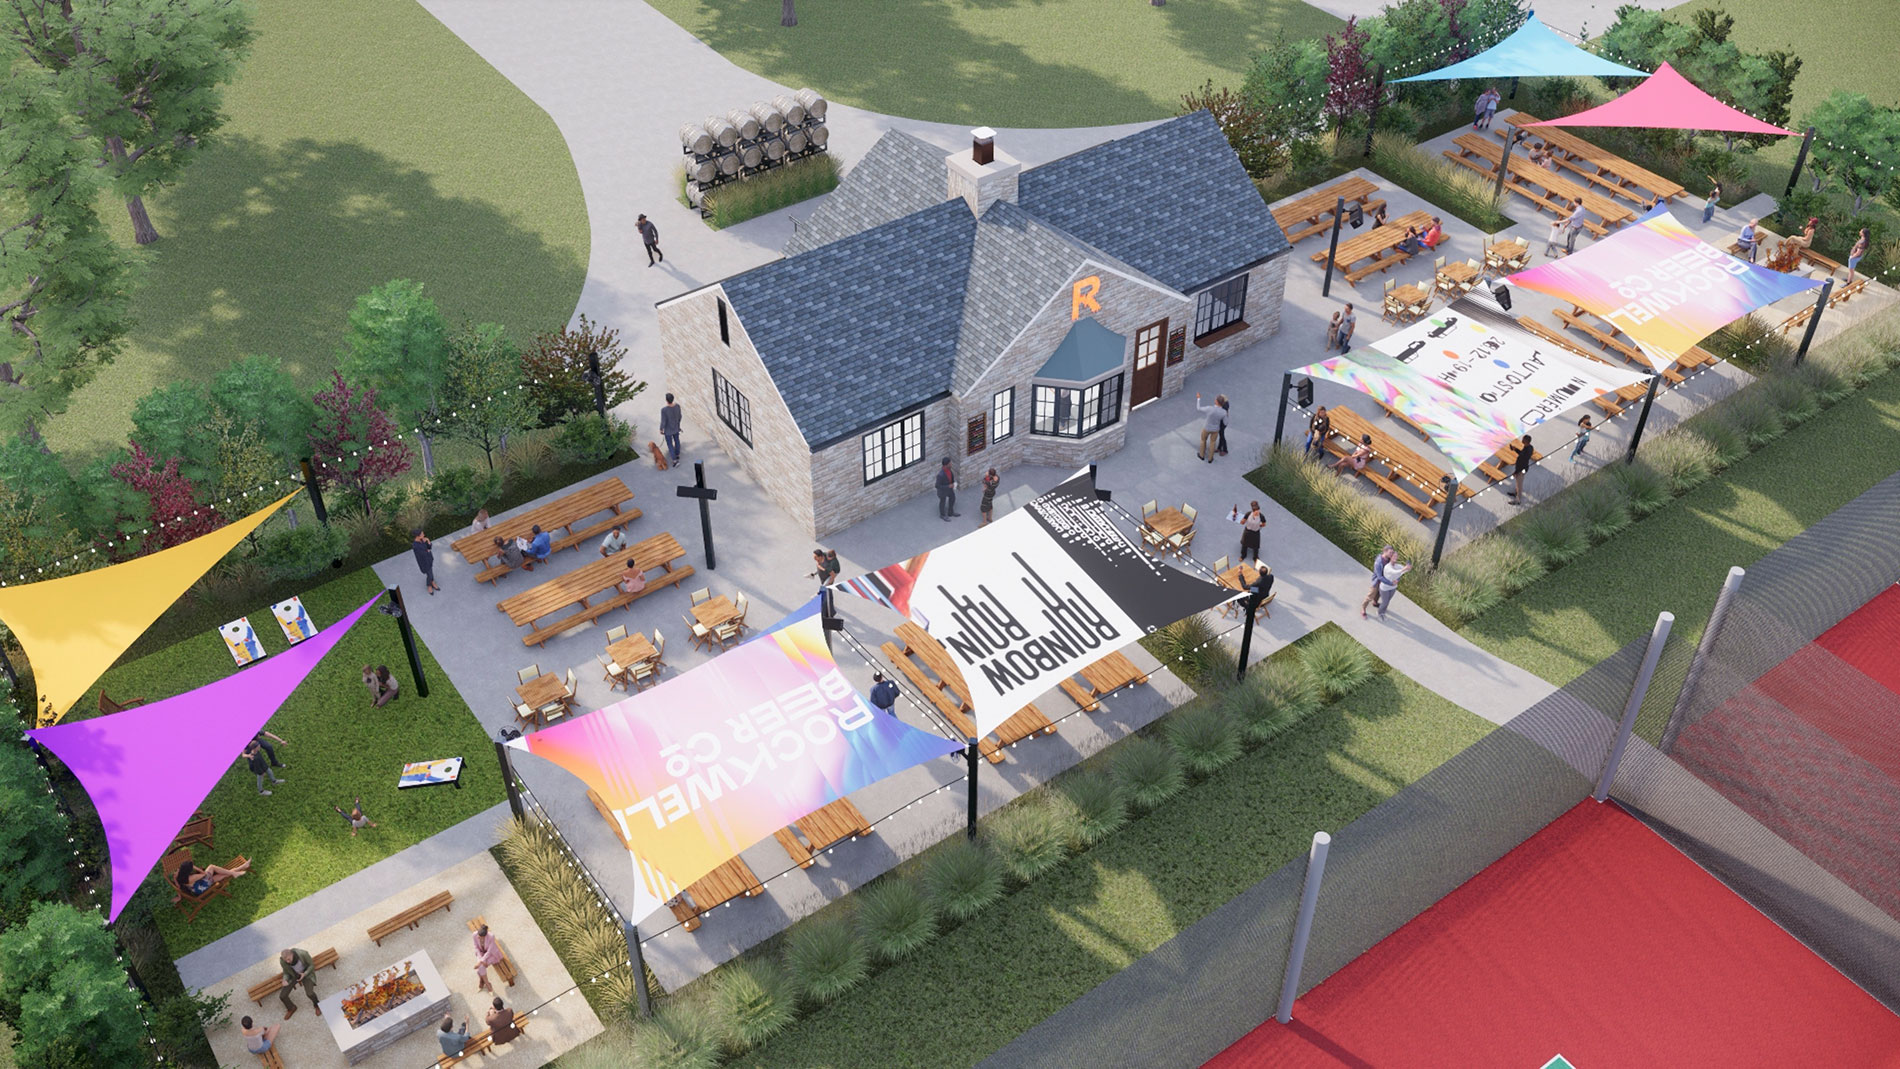 Rockwell Beer Garden brings new pizza-centric program to Francis Park